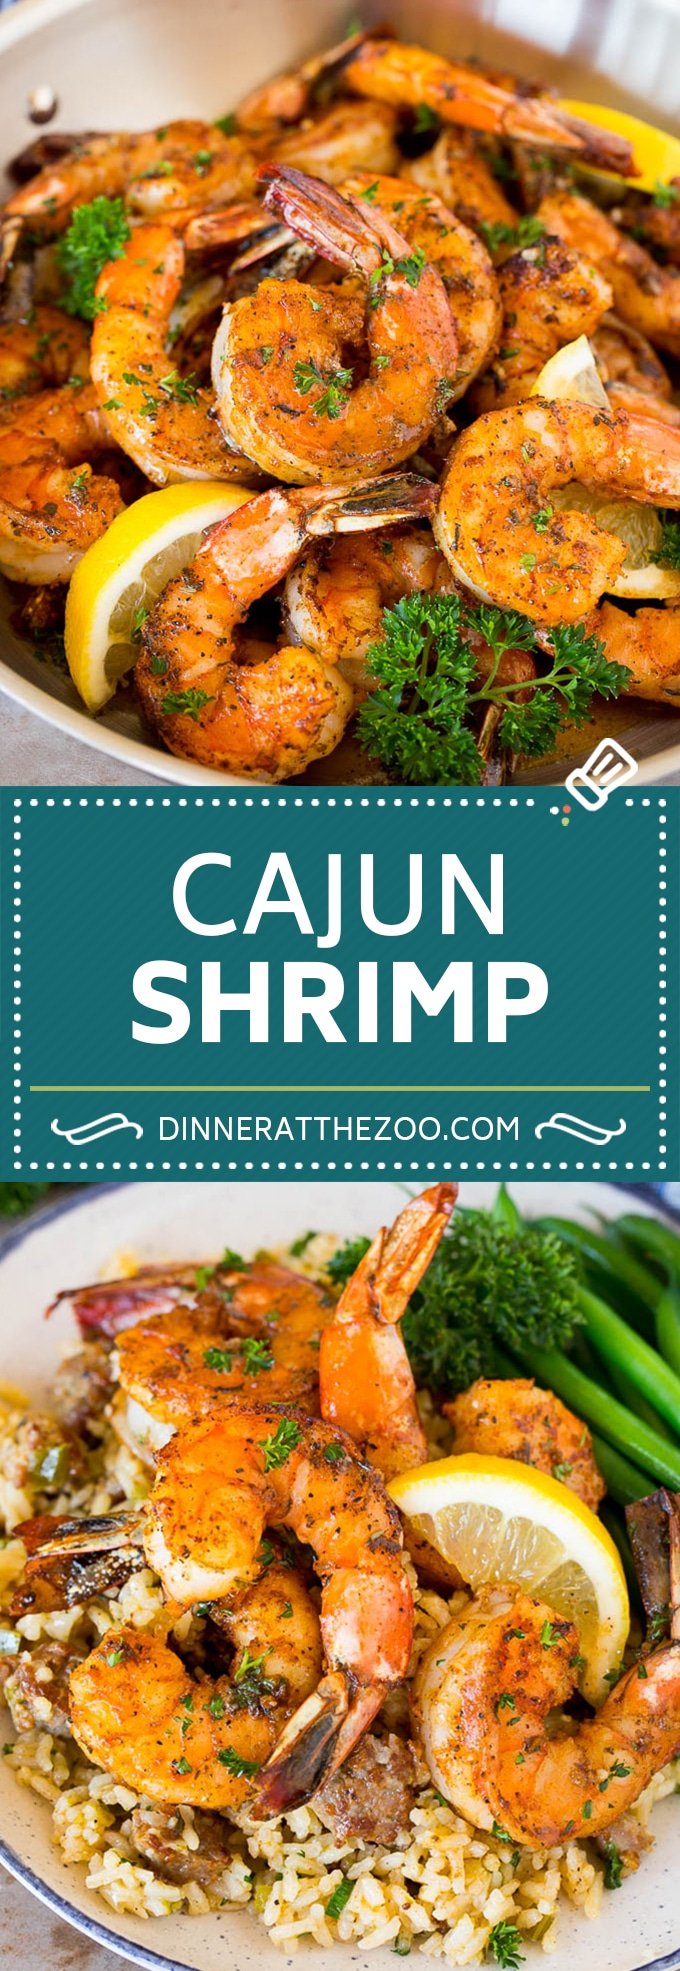 This Cajun shrimp recipe is large shrimp coated in butter, lemon and seasonings then seared to perfection.